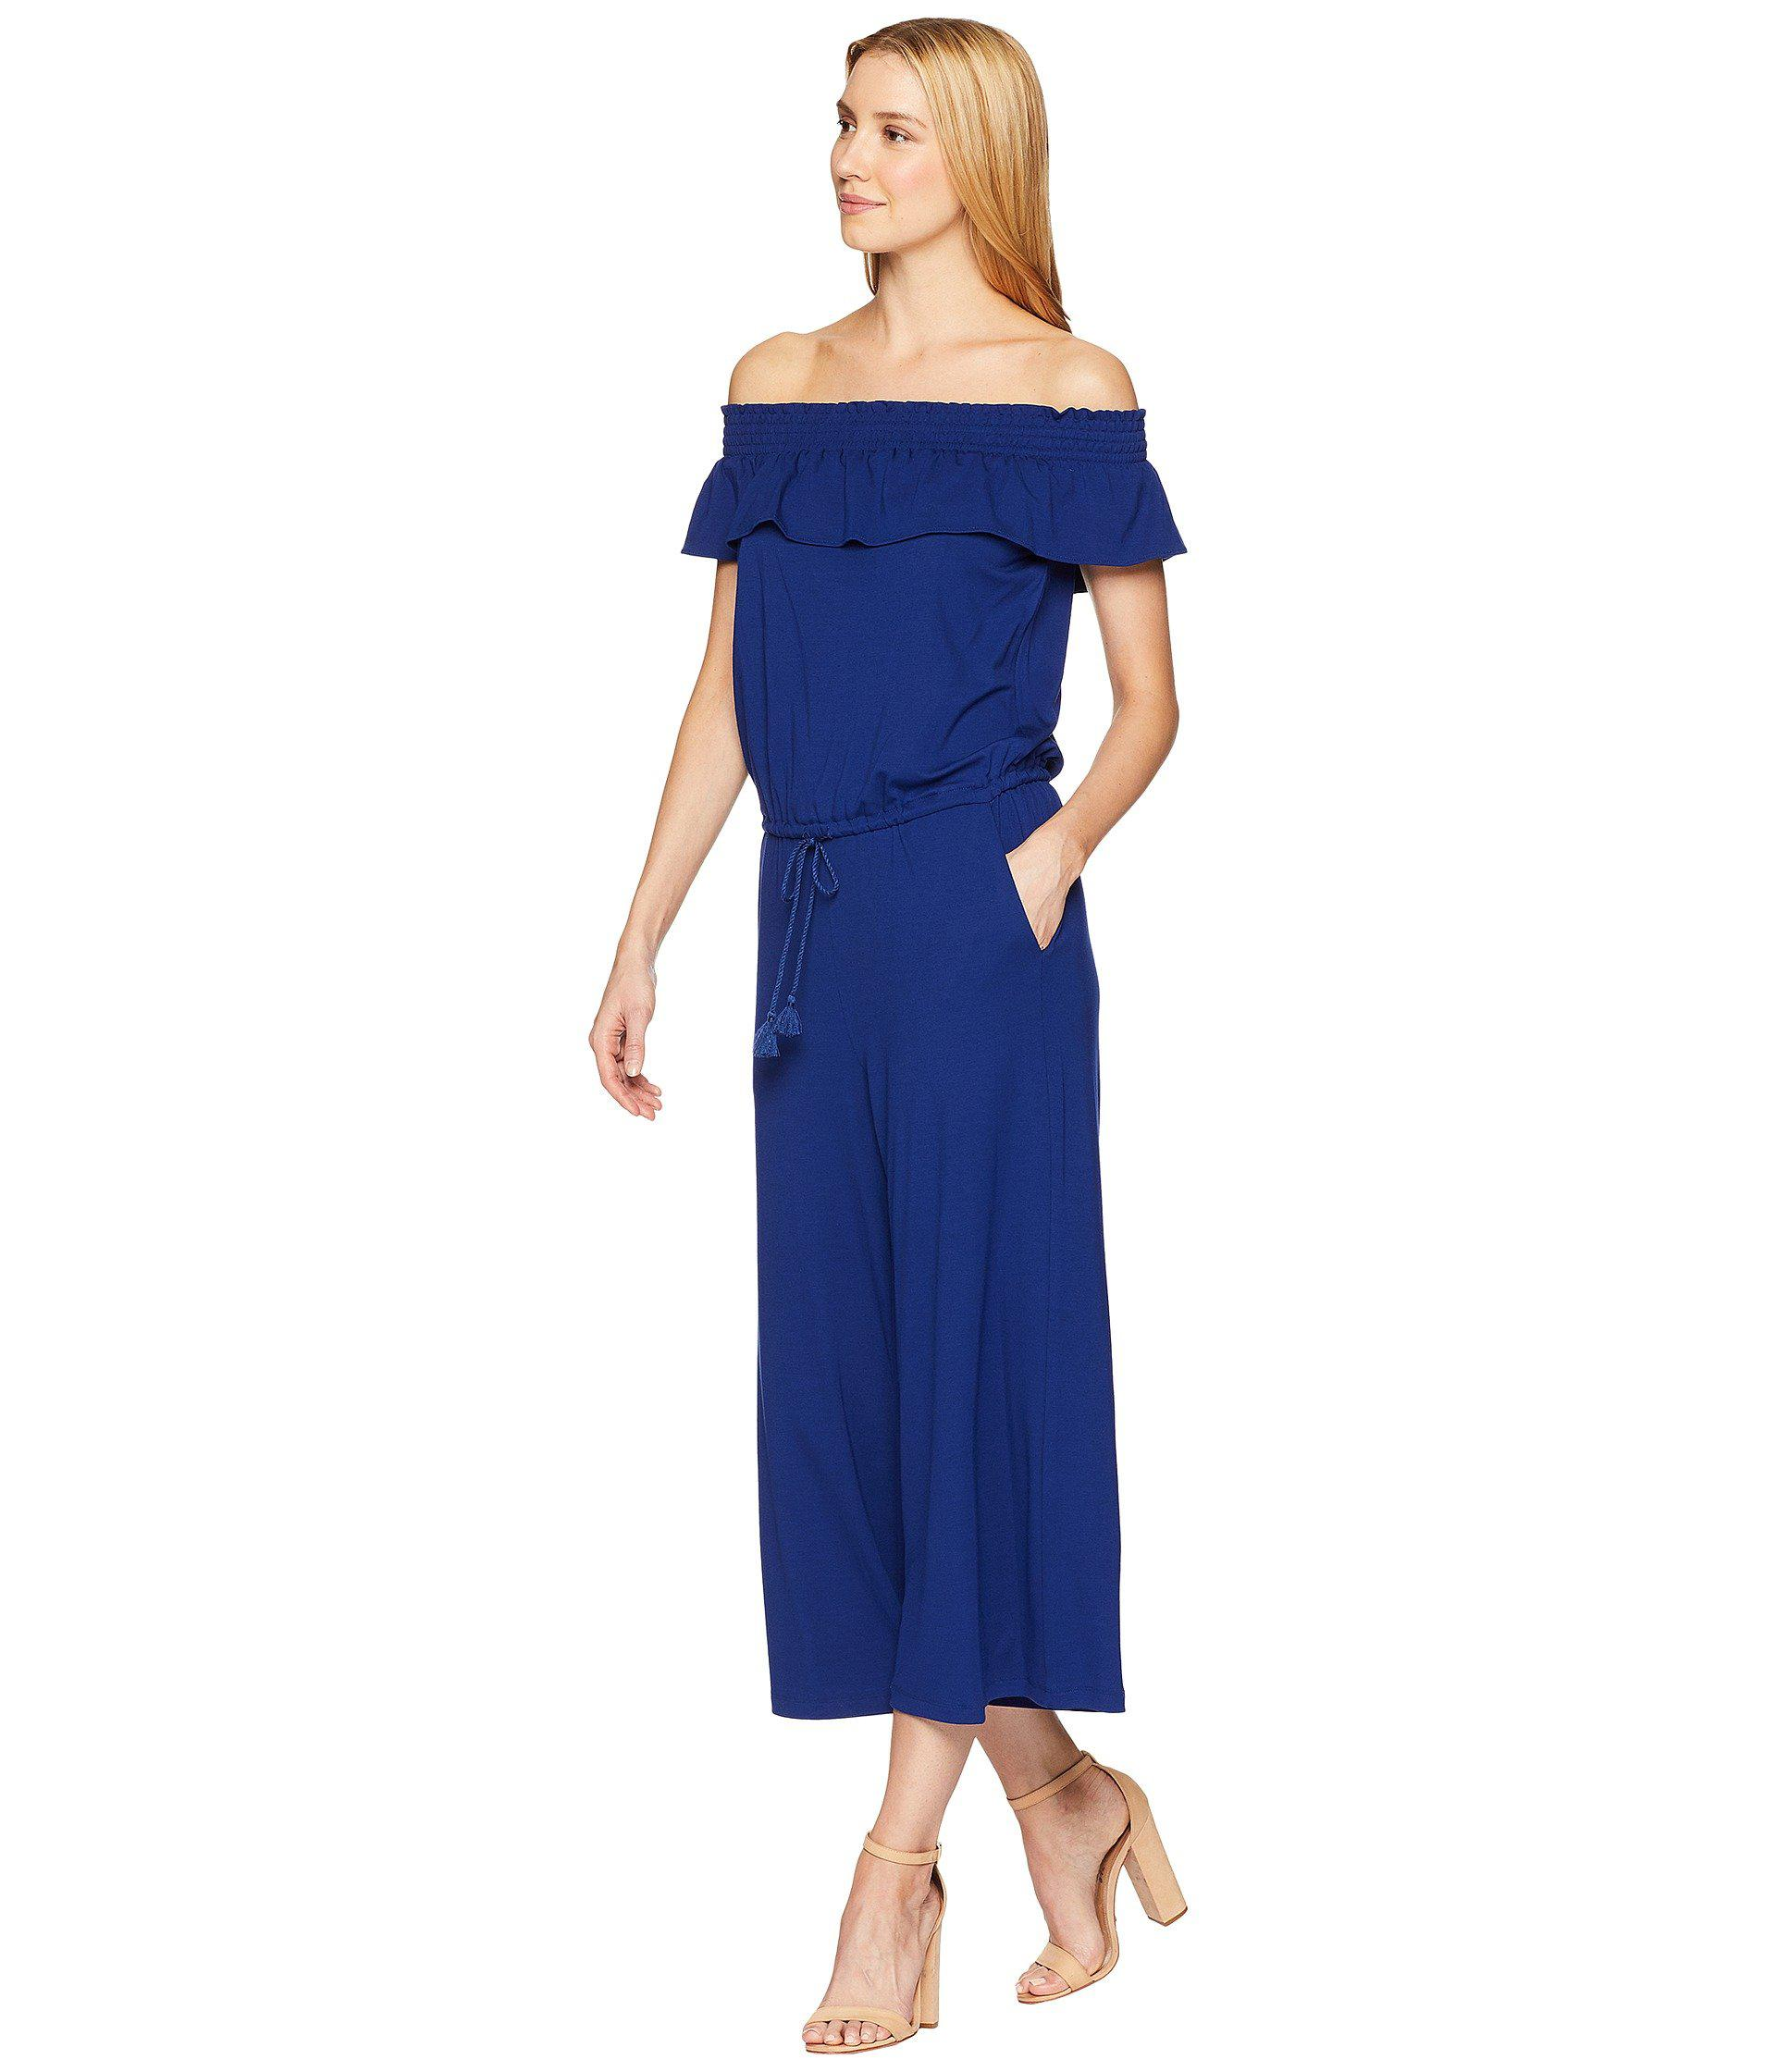 466e5b0f014d Lyst - Lauren by Ralph Lauren Off The Shoulder Wide-leg Jumpsuit in Blue -  Save 57%